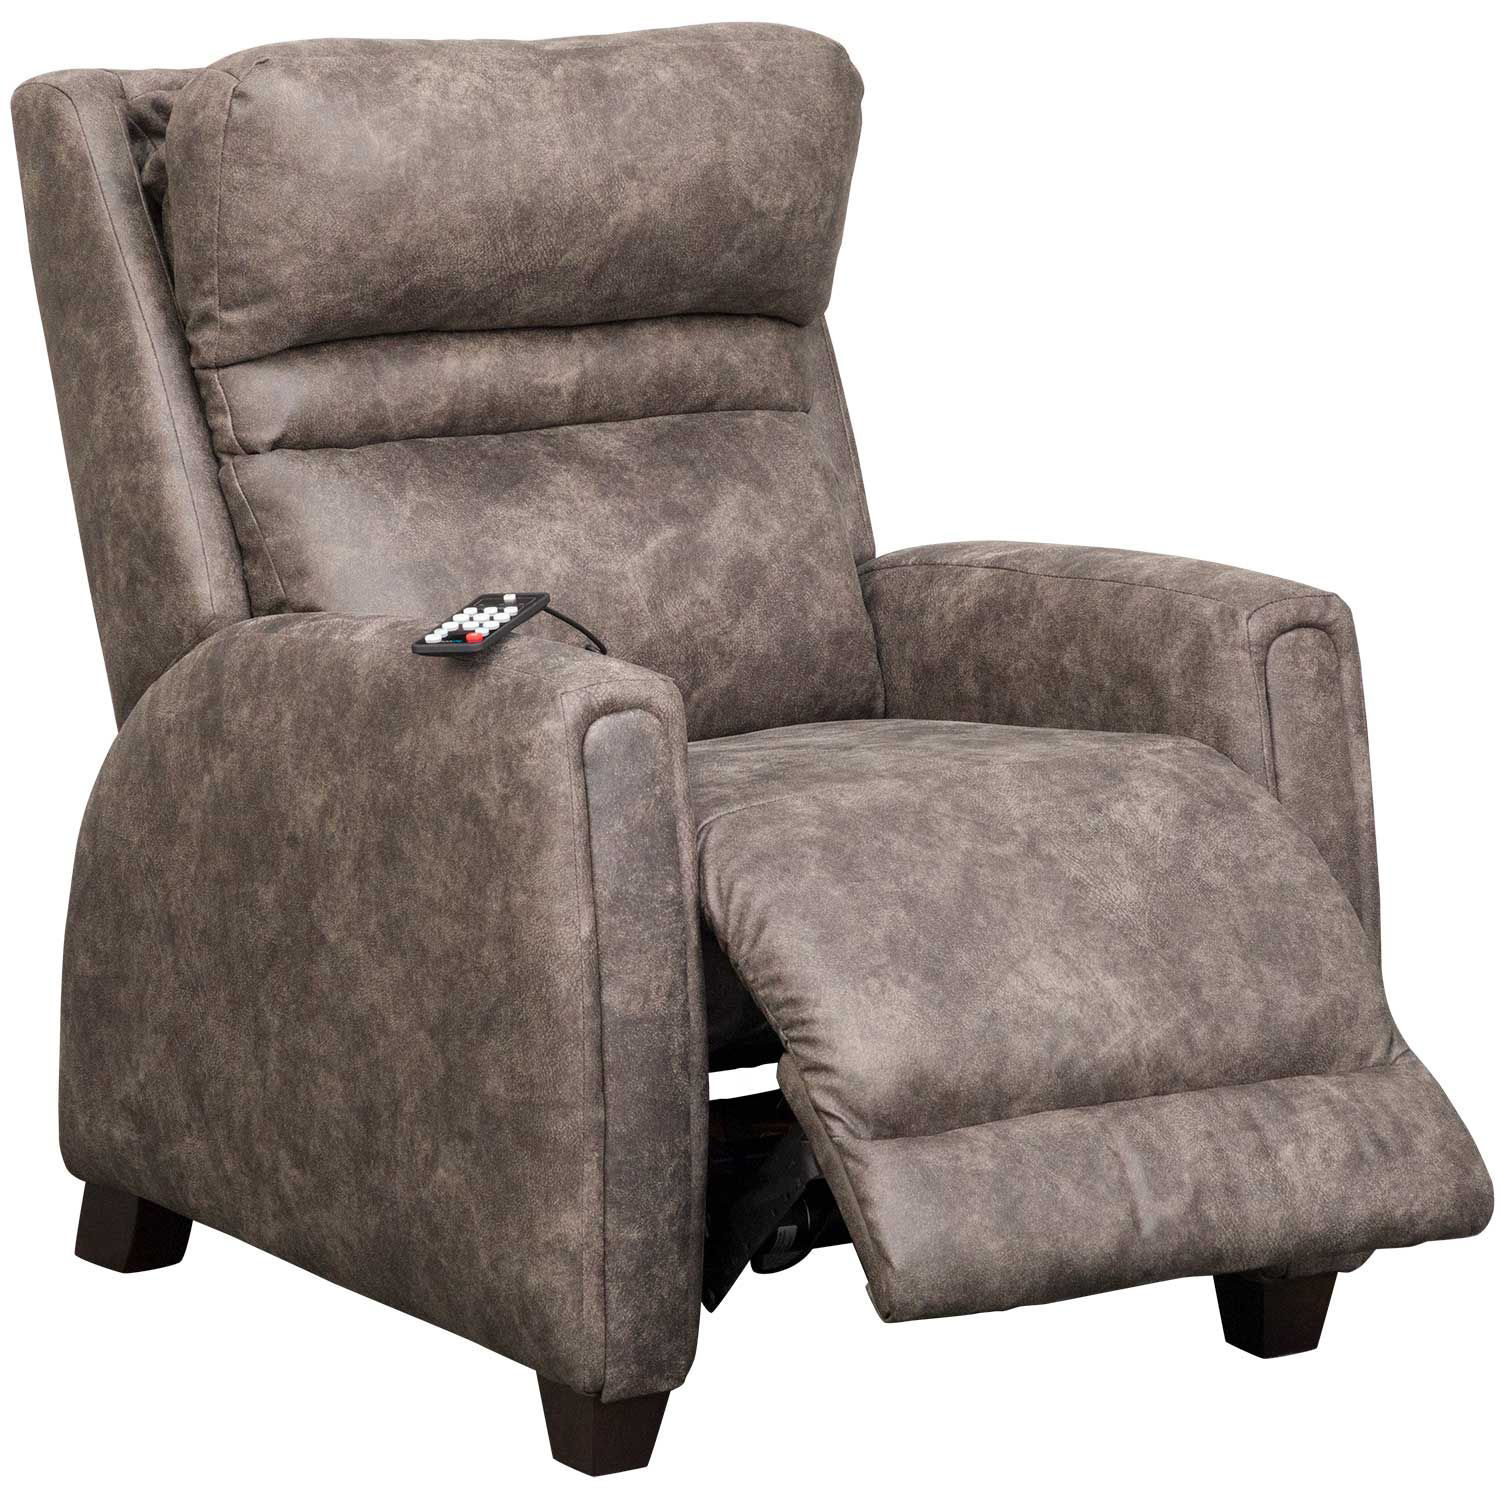 Picture of Turbo Brindle SoCozi Zero Gravity Power Recliner with Adjustable Headrest